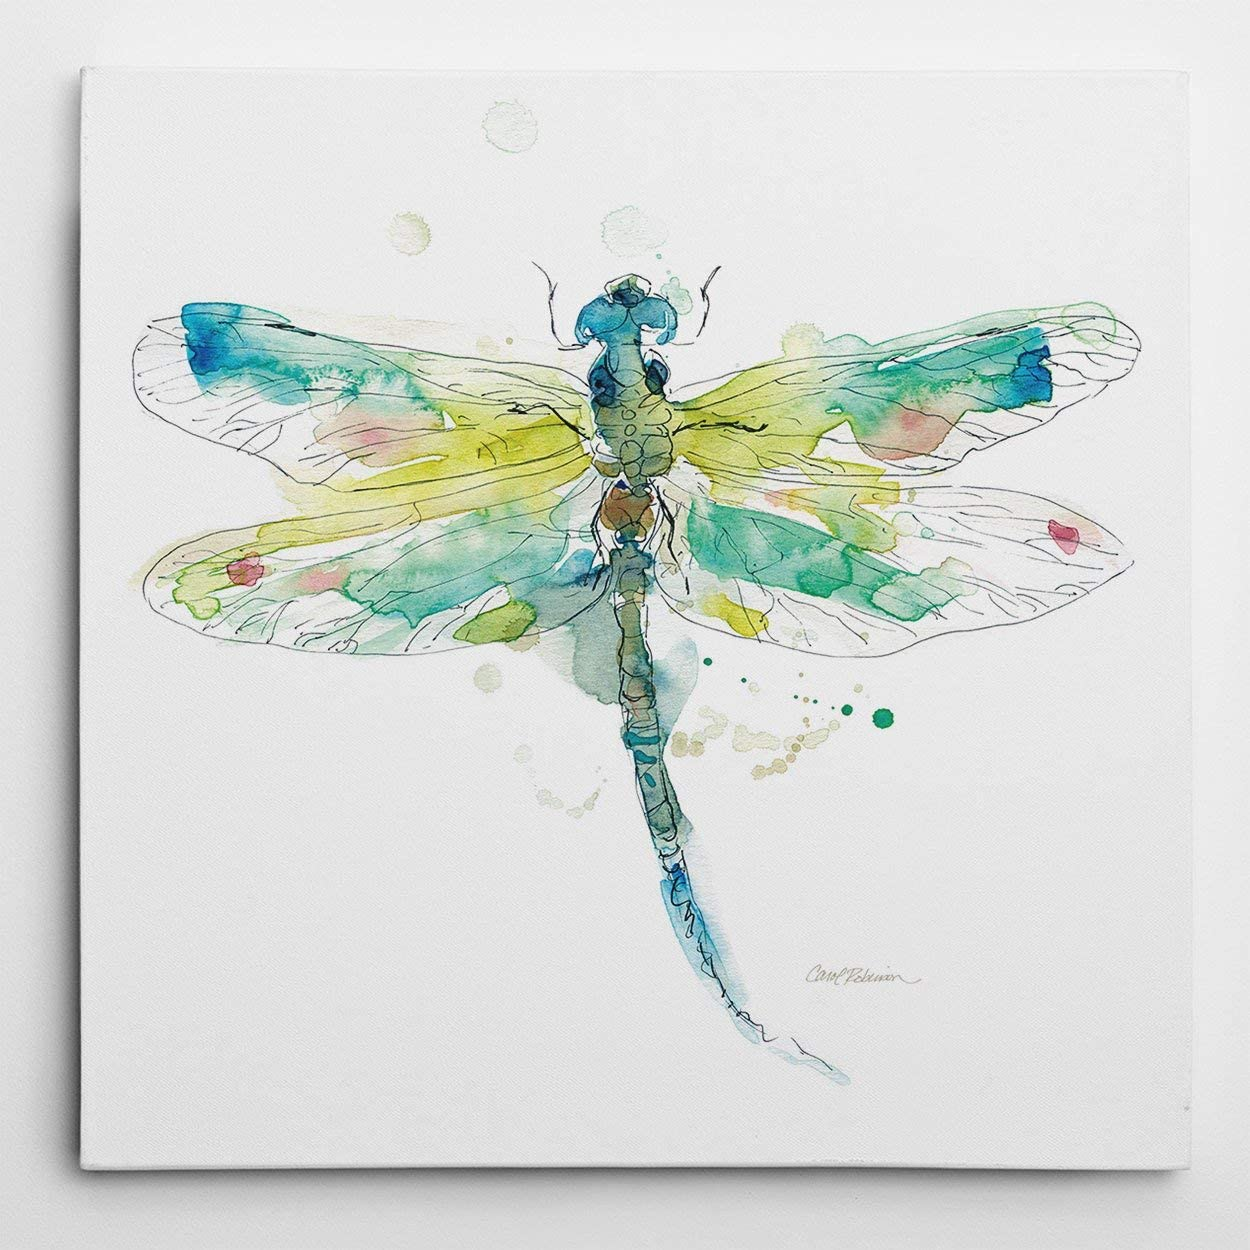 WEXFORD HOME Carol Robinson 'Sketchbook Dragonfly Gallery Wrapped Canvas Wall Art, 24x24